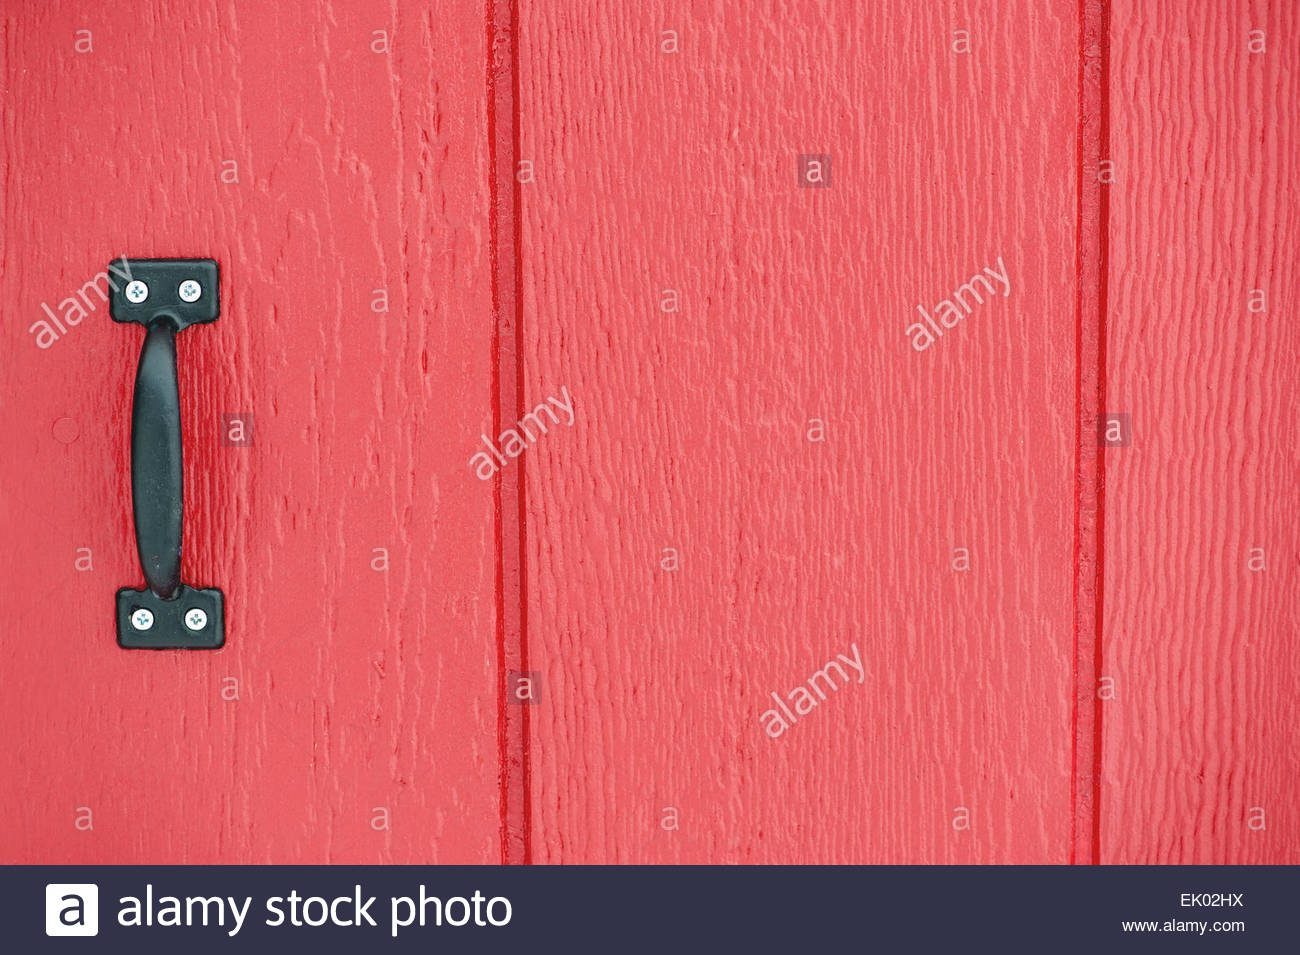 Red Barn Background rustic red barn door background with black handle stock photo